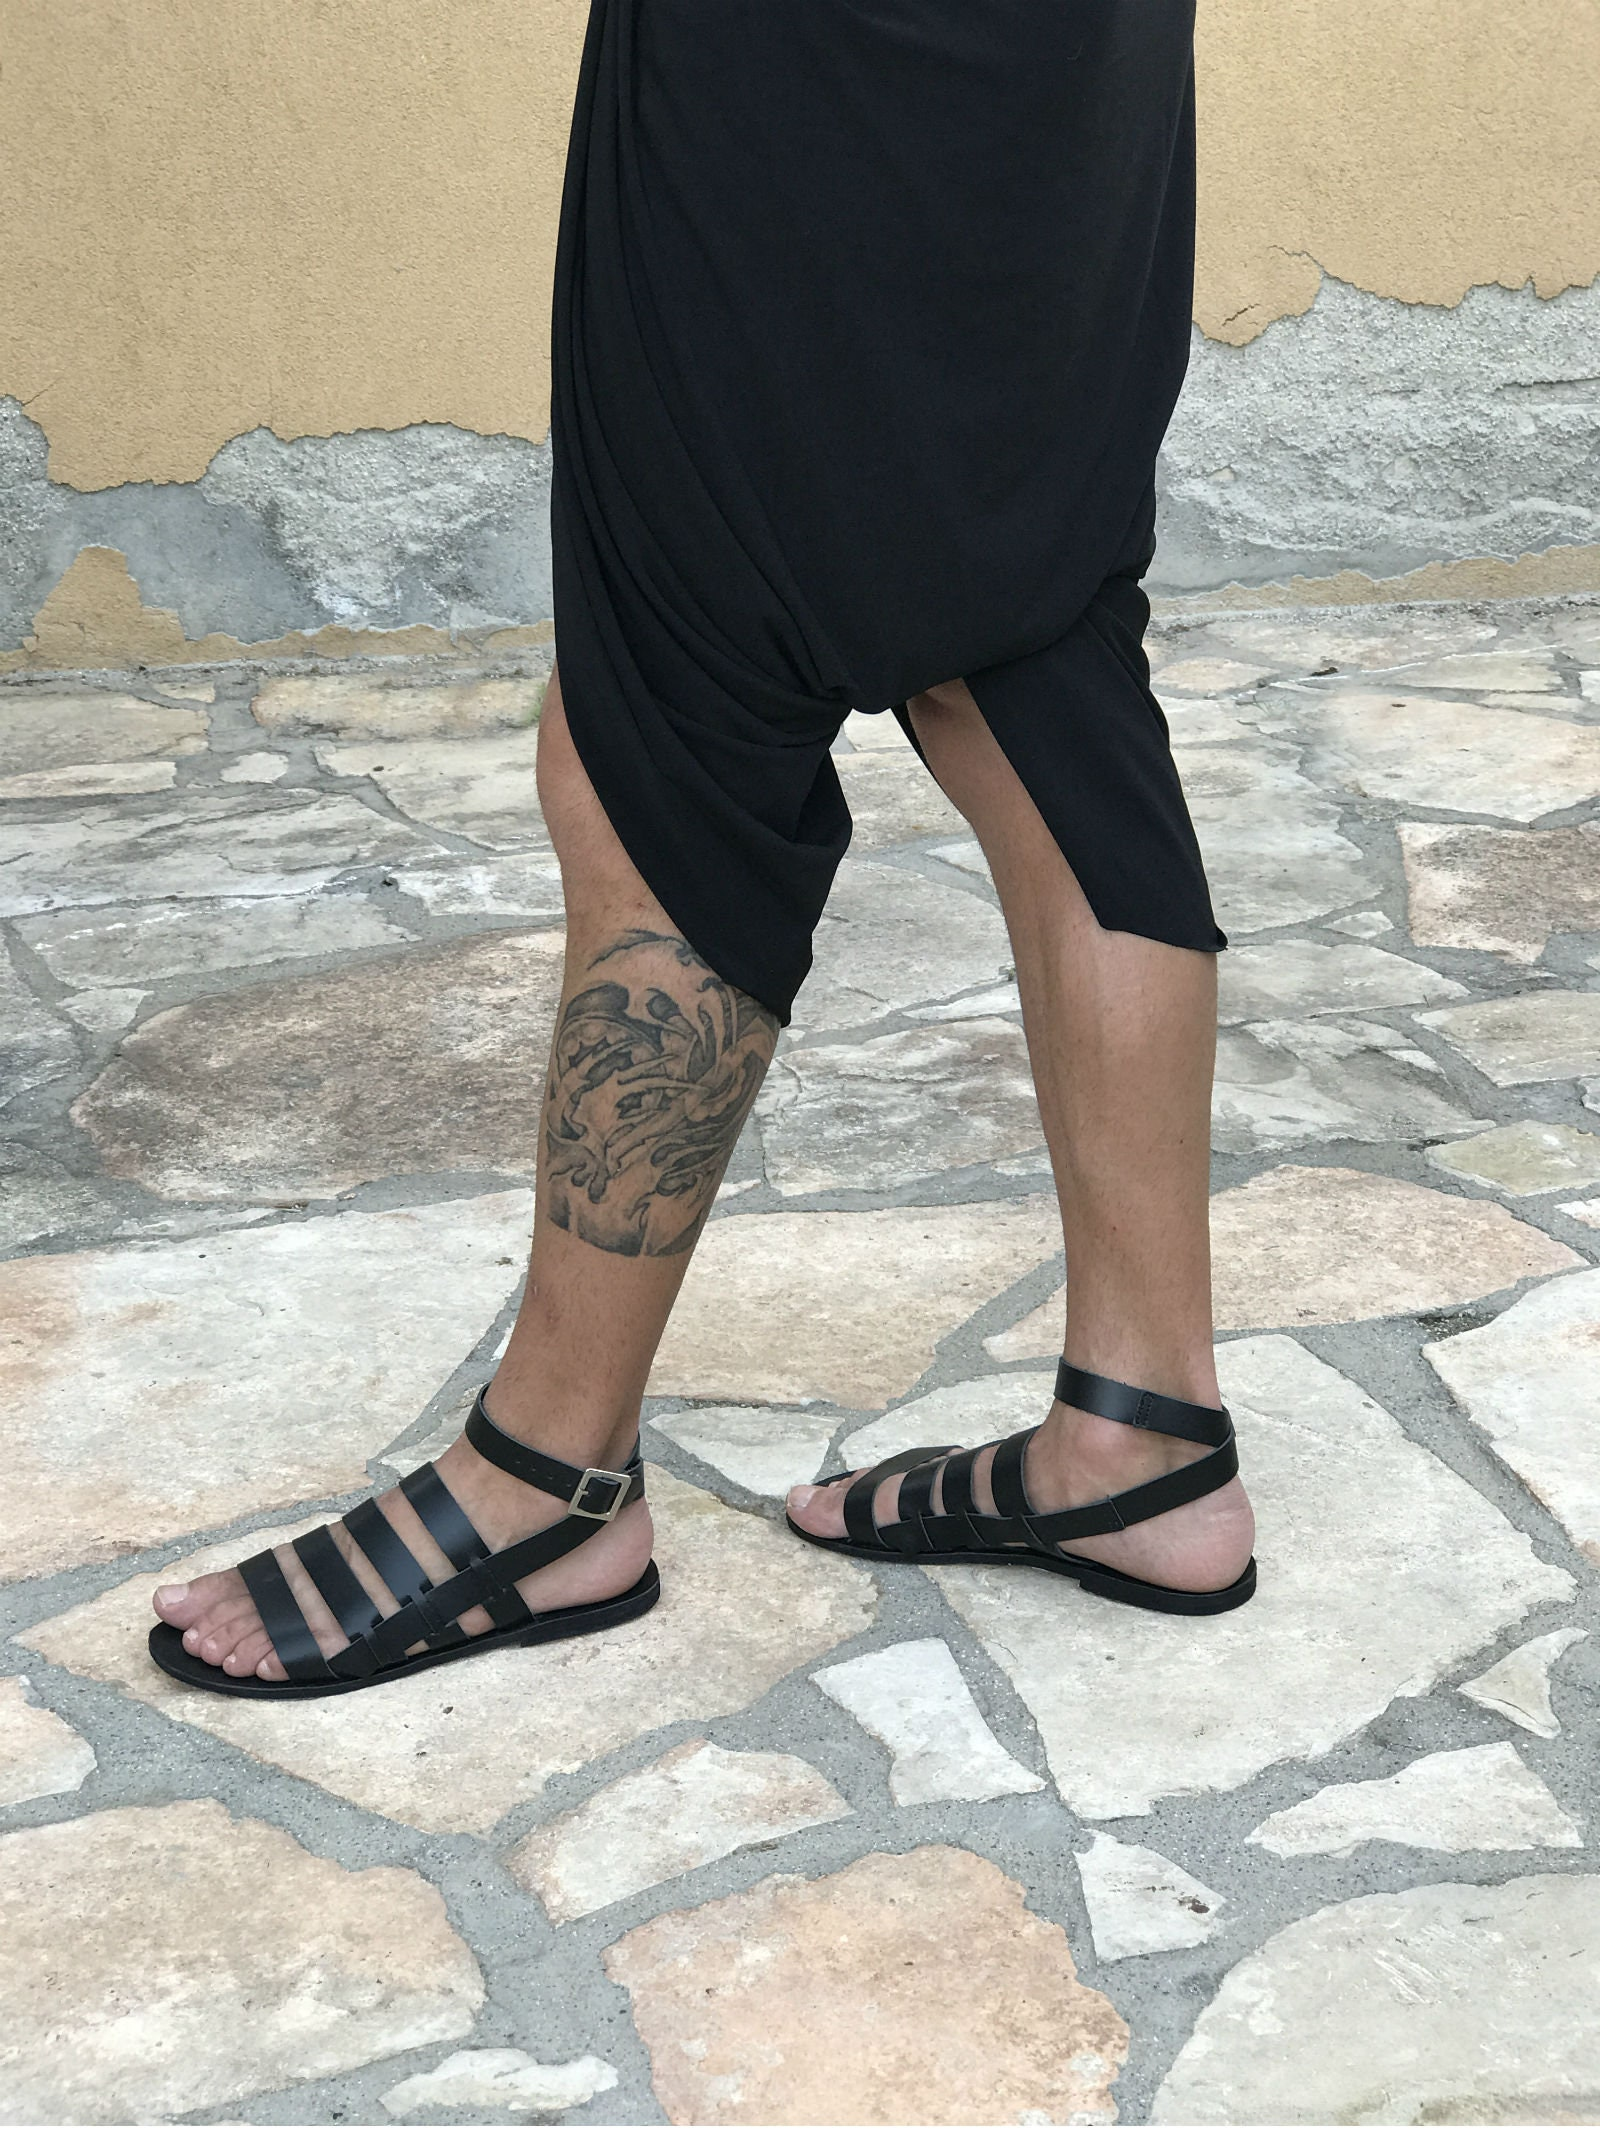 265abad9d030 Mens leather sandals with ankle strap black leather sandals